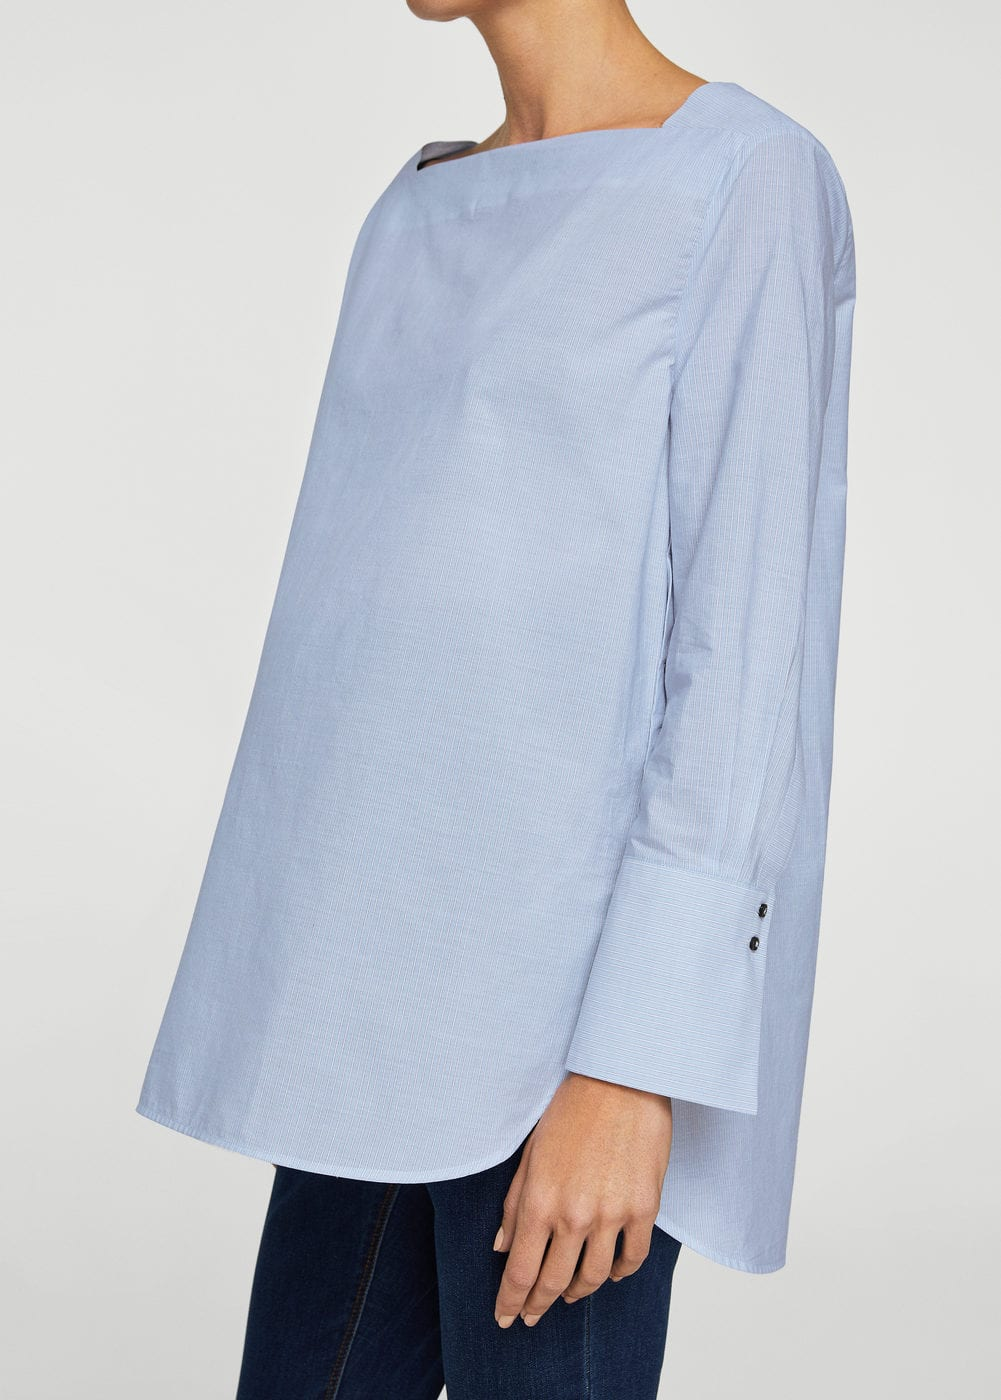 Buttons cotton blouse | MANGO